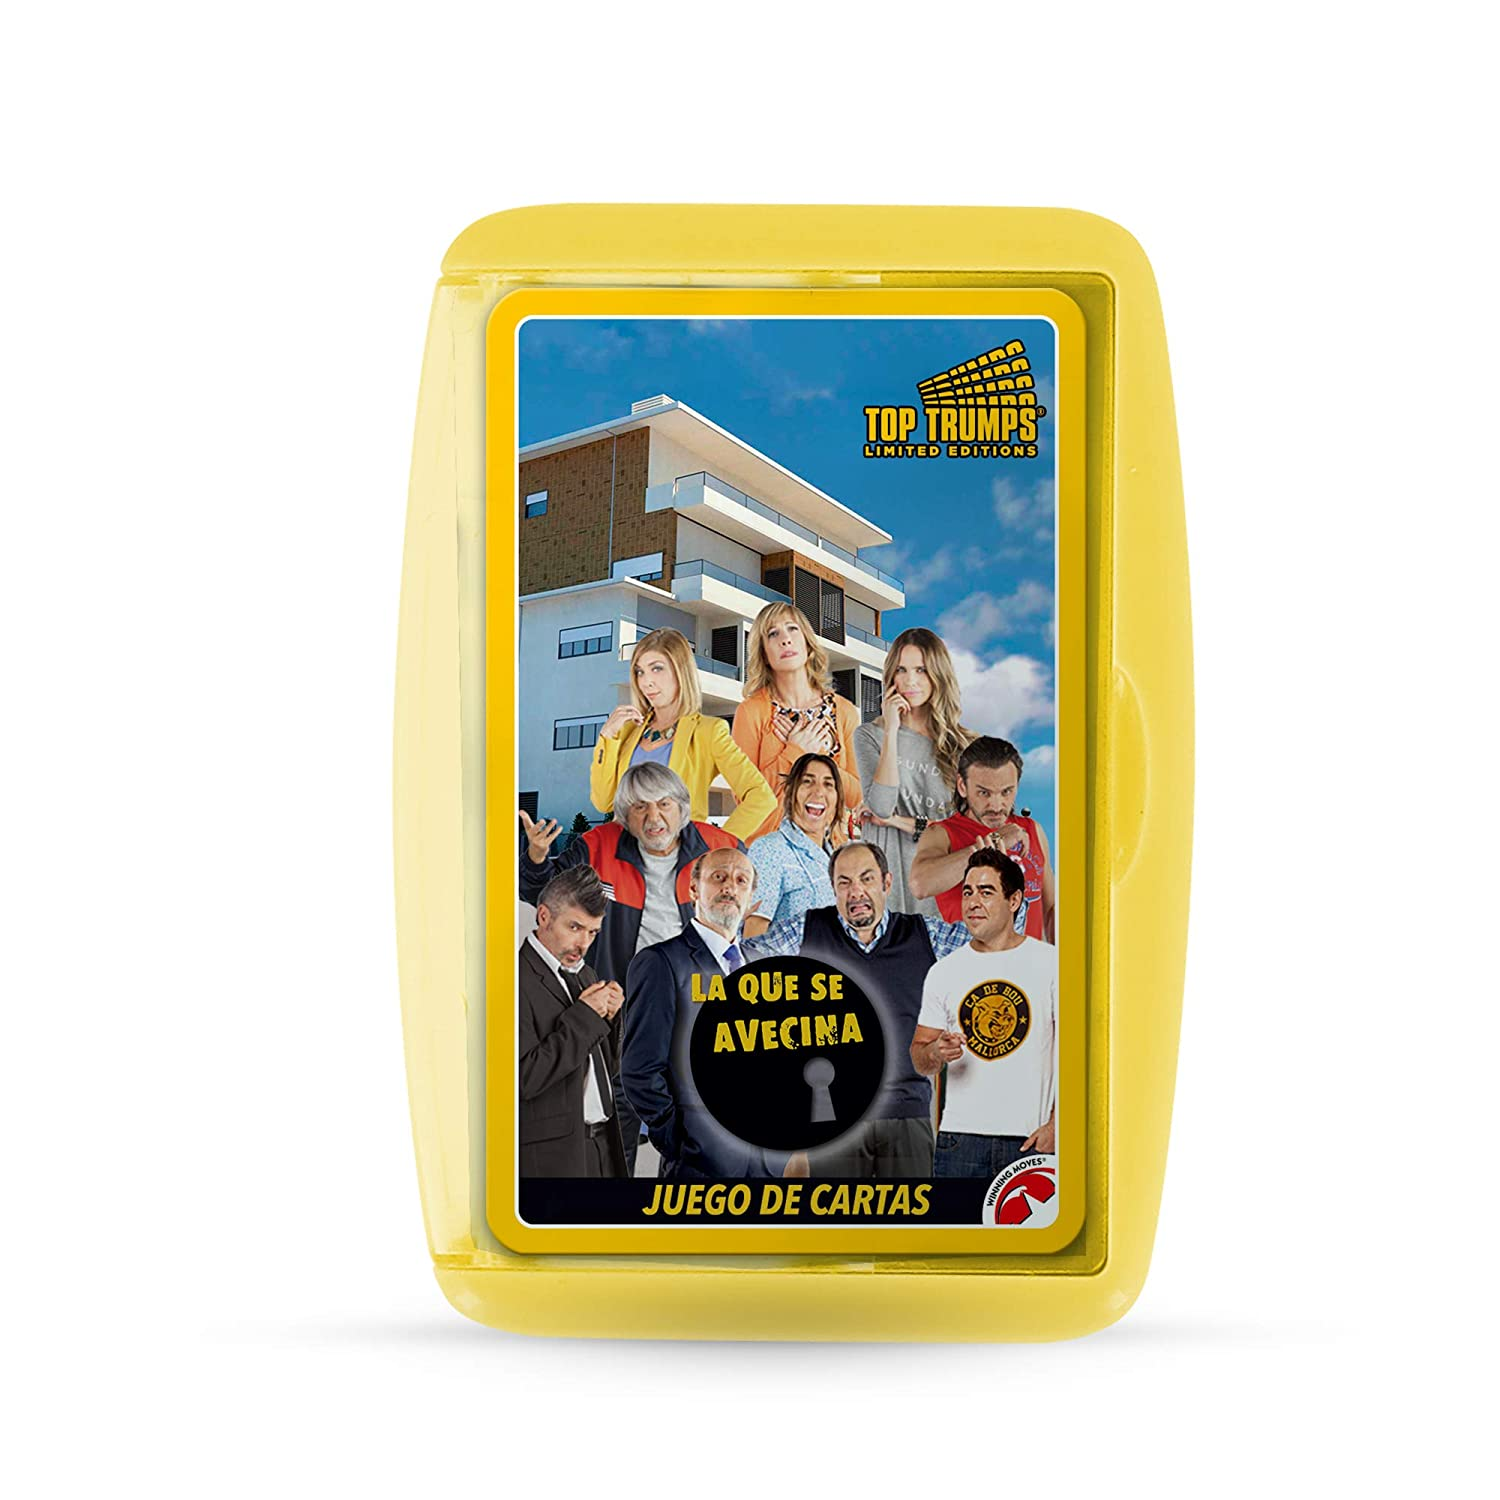 Amazon.com: ELEVEN FORCE Harry Potter Top Trumps El Que Se ...